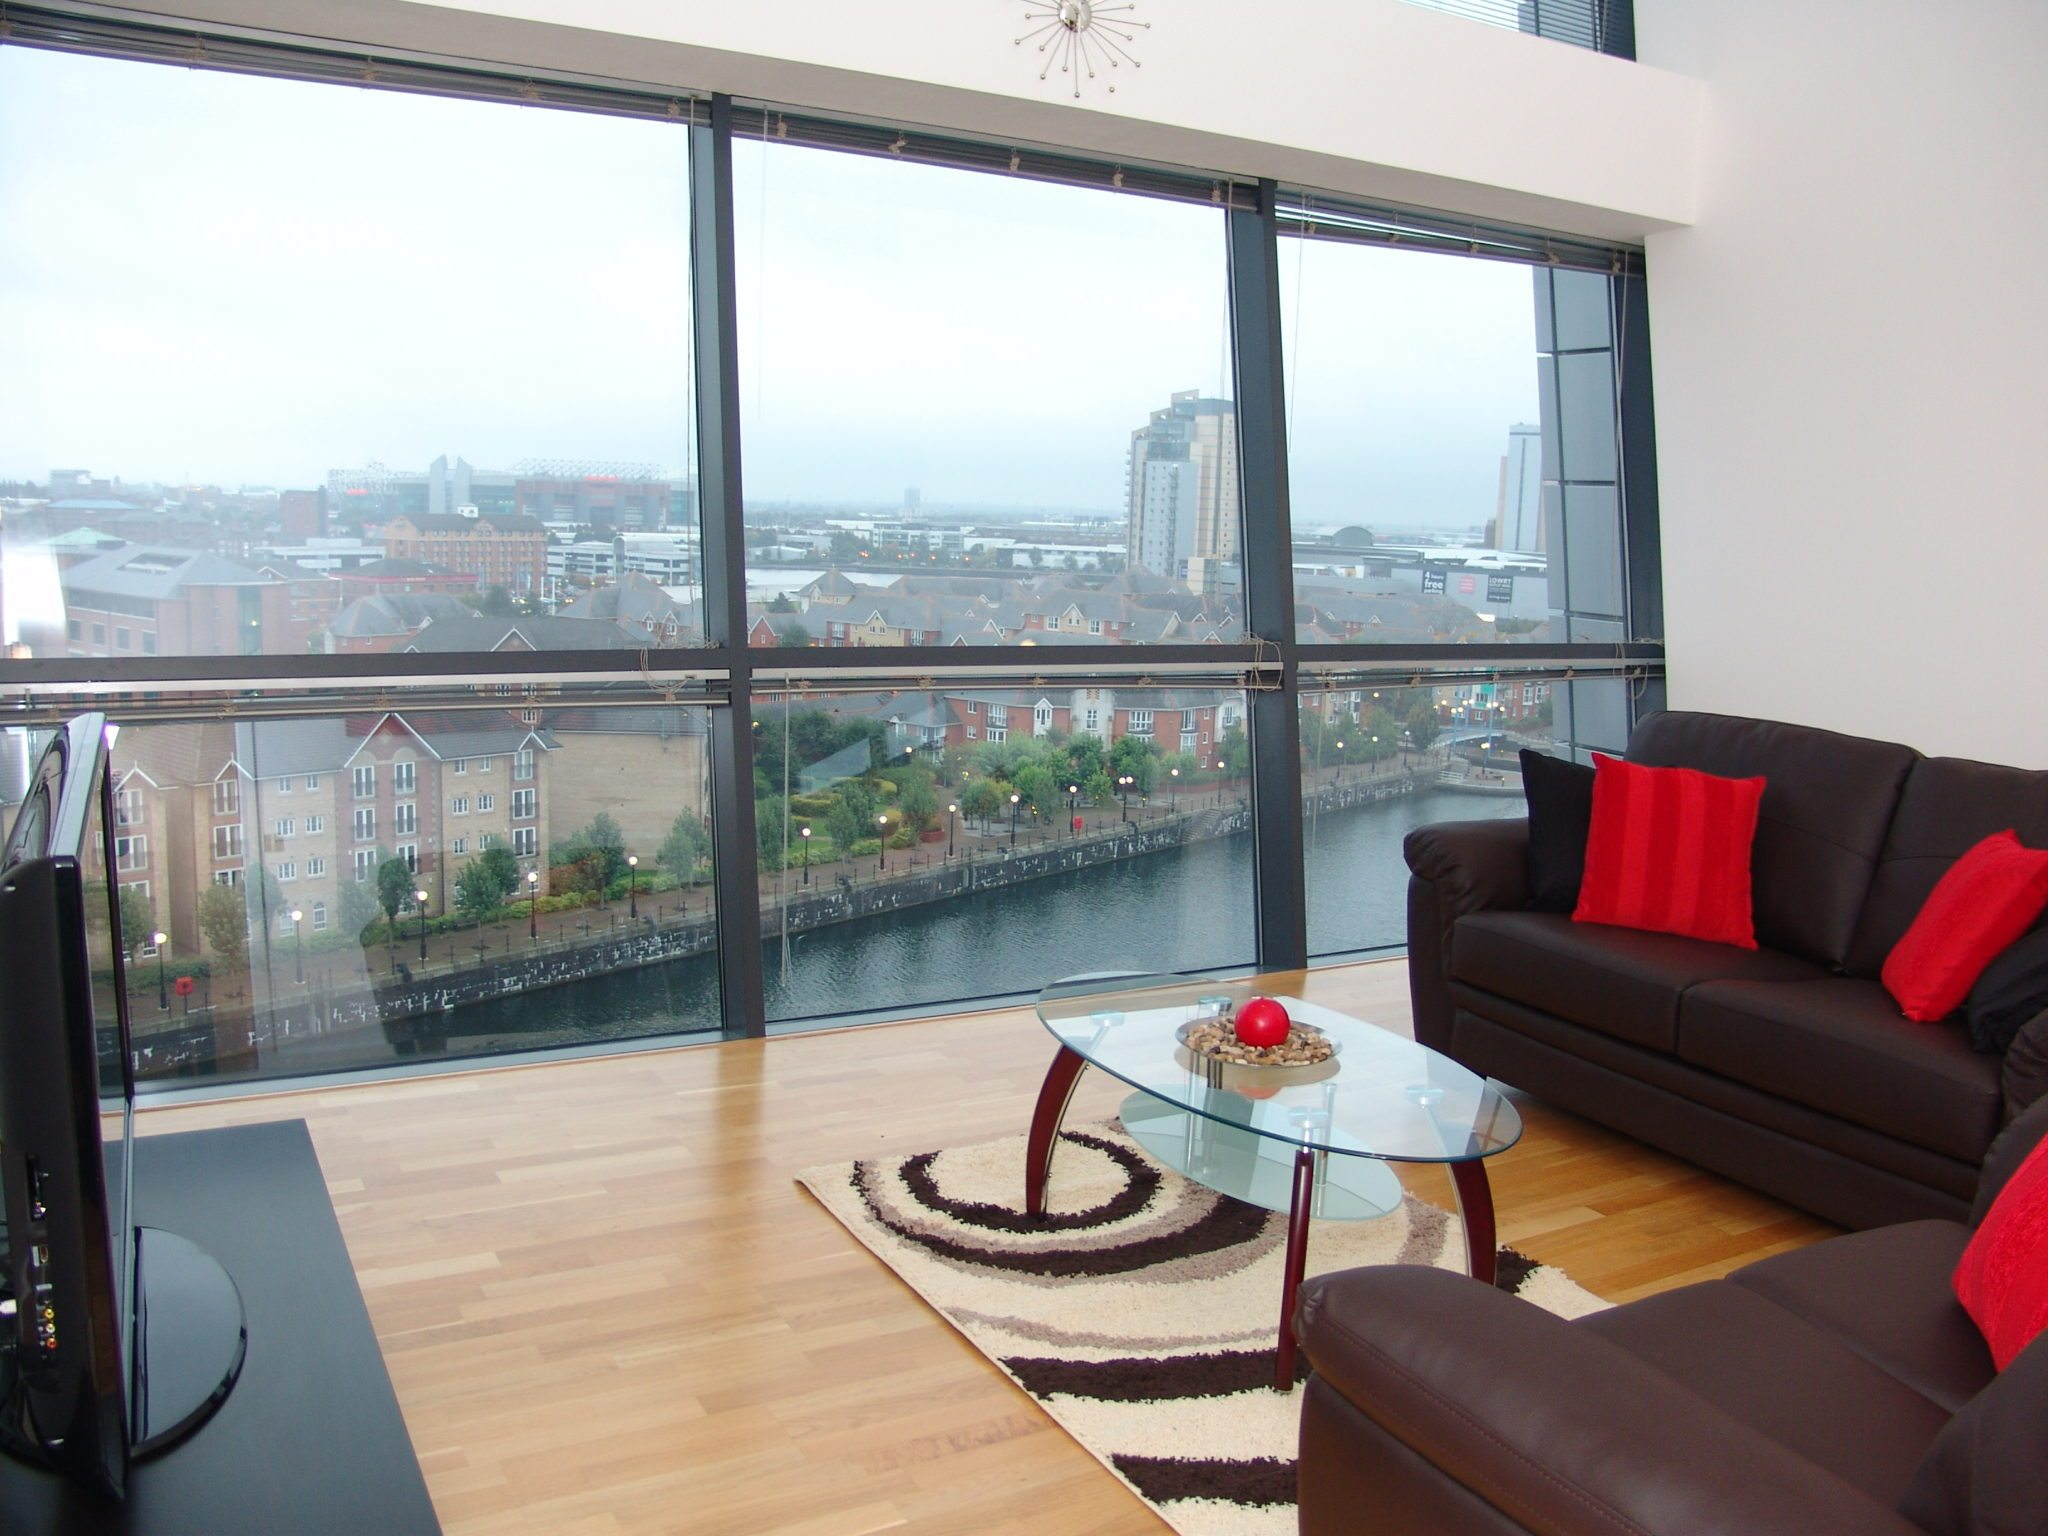 Serviced-Apartments-Manchester---Salford-Quays-Corporate-Accommodation-UK---Self-catering-accommodation-Manchester-–-Cheap-Airbnb-–-Free-Wifi-–-Parking-available-|-Urban-Stay